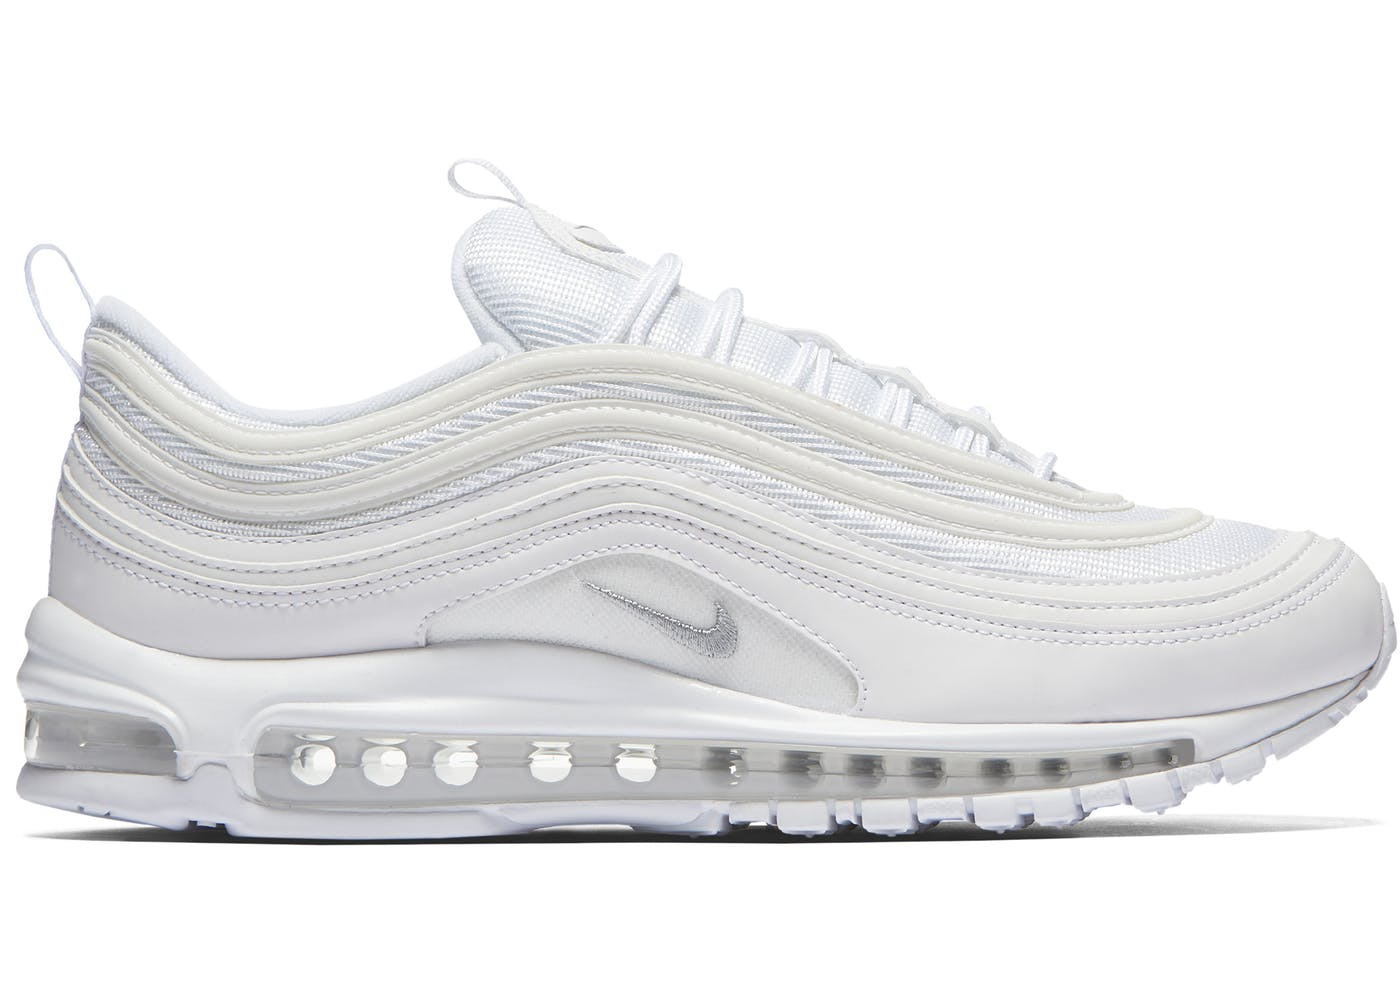 Sneakers It Looks Like the Cheap Nike Air Max 97 Is d8db27654